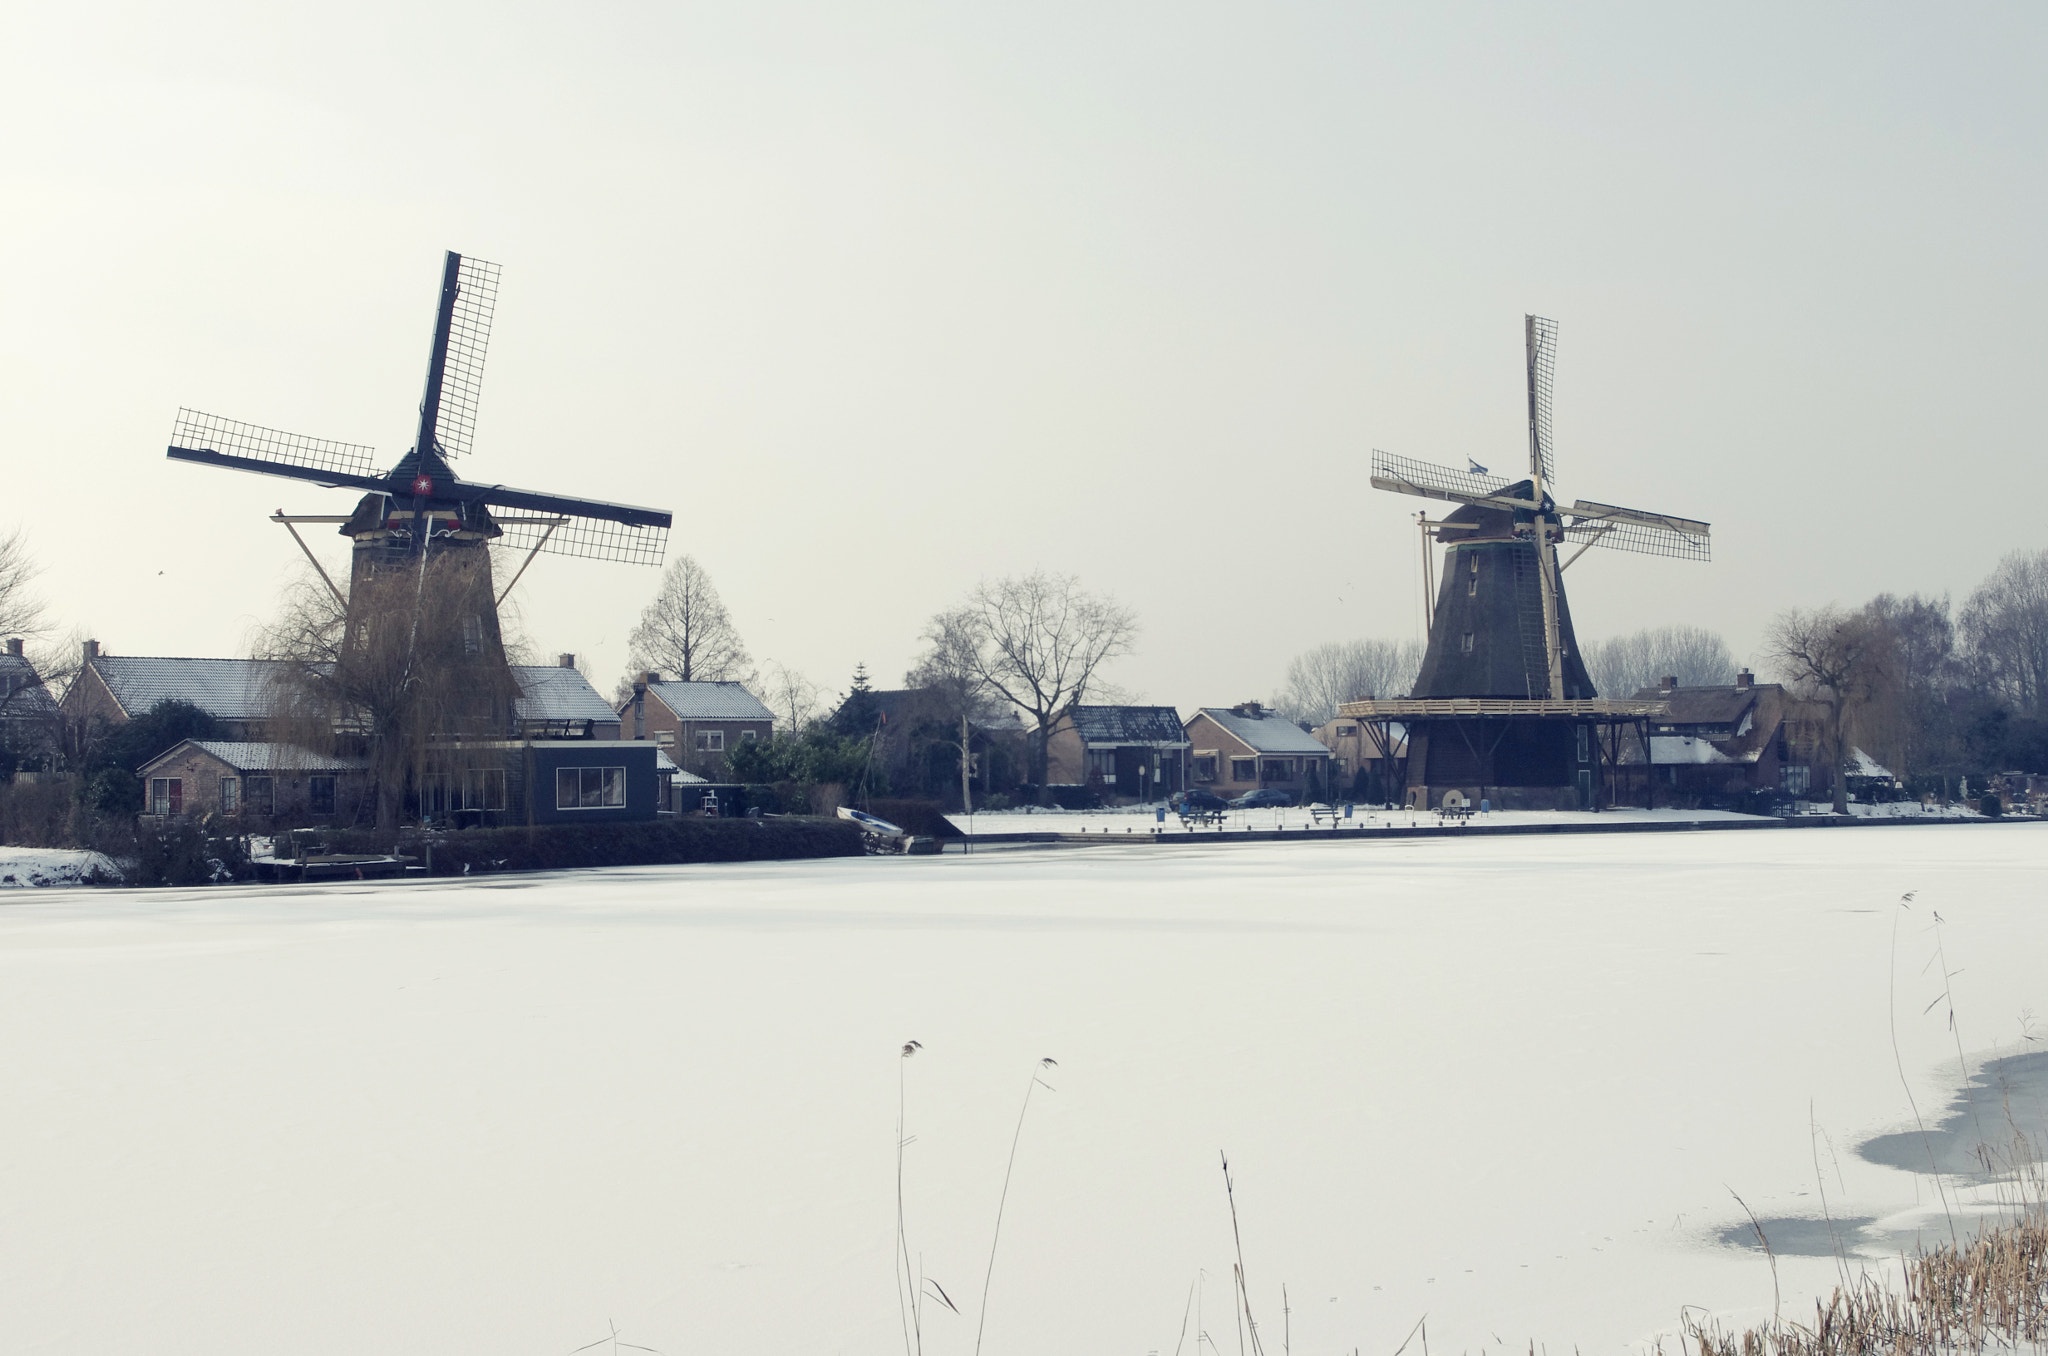 Photograph winter landscape; two windmills at weesp holland by hans hoeben on 500px